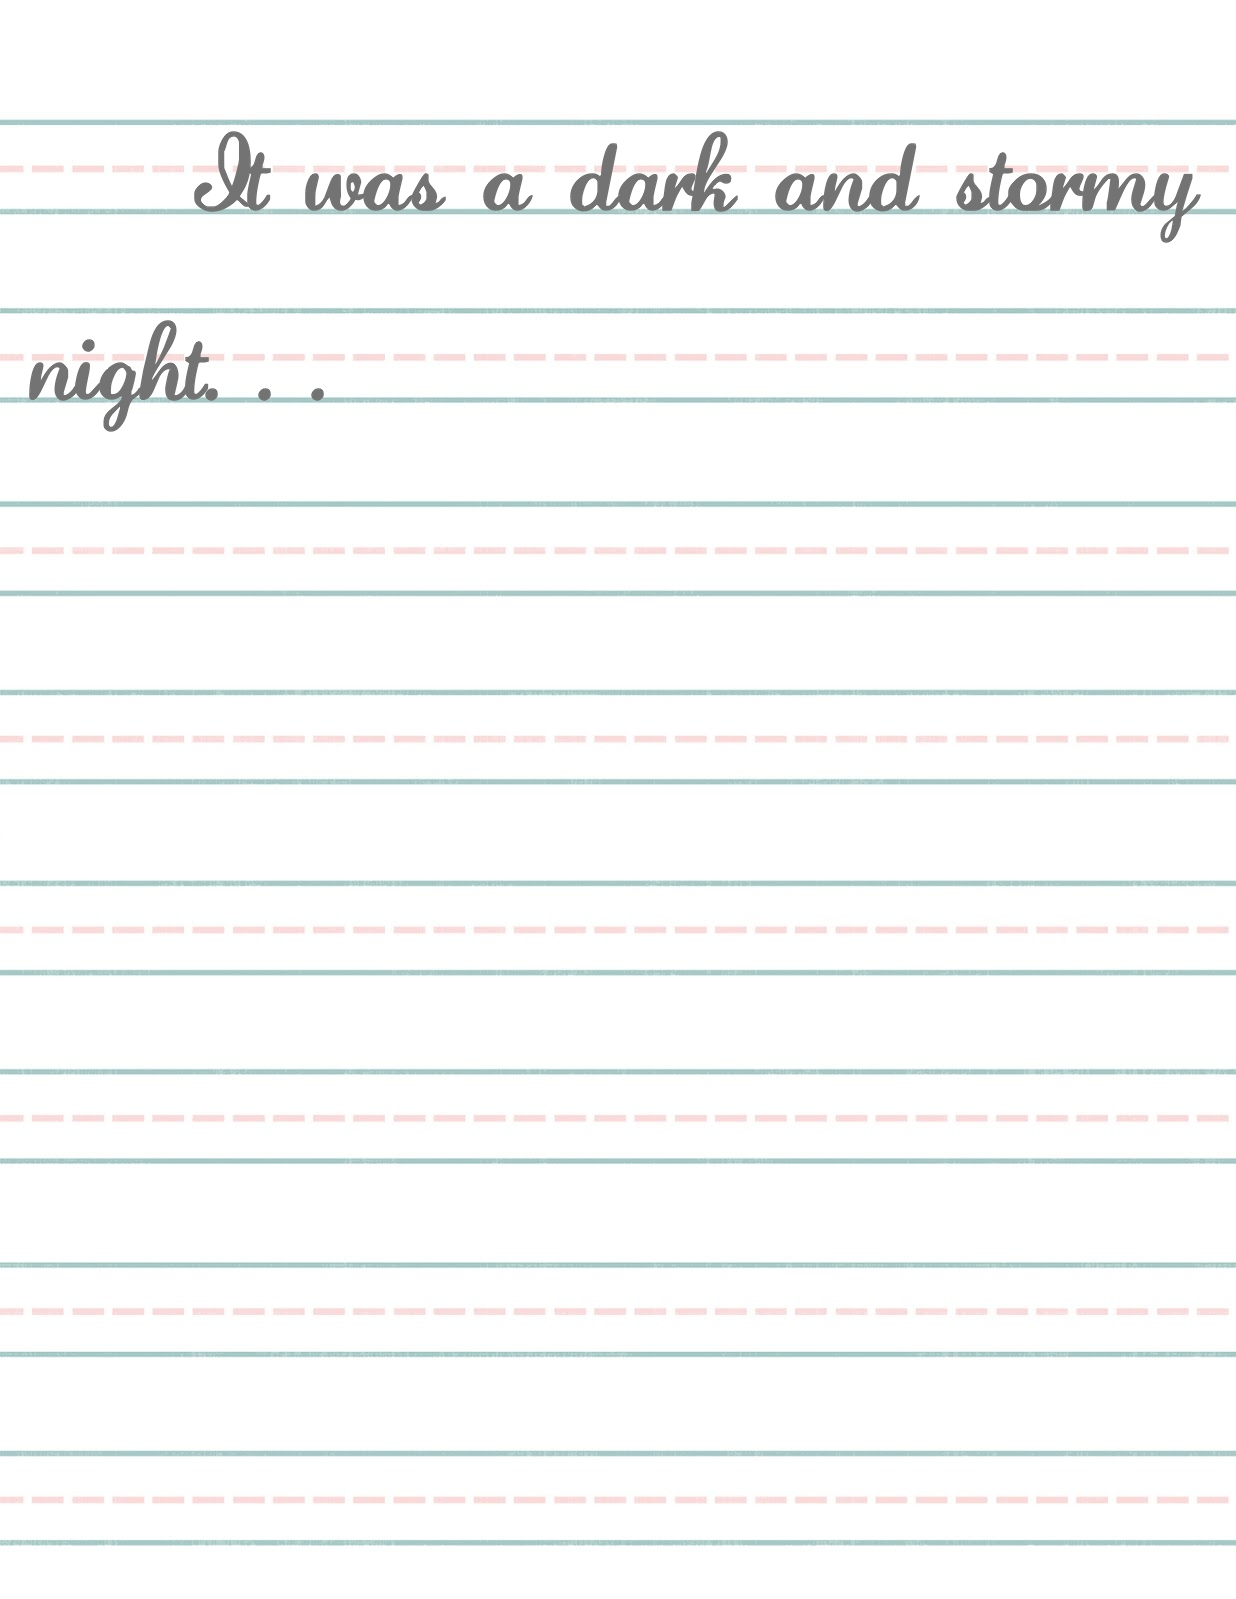 elementary lined paper Sometimes this makes messier handwriting at first because these tiny hand muscles aren't used to writing however, sometimes it leads to neater handwriting because your speedy gonzalez who hates writing and just wants to be done needs to slow down in order to get anything on the paper you know.